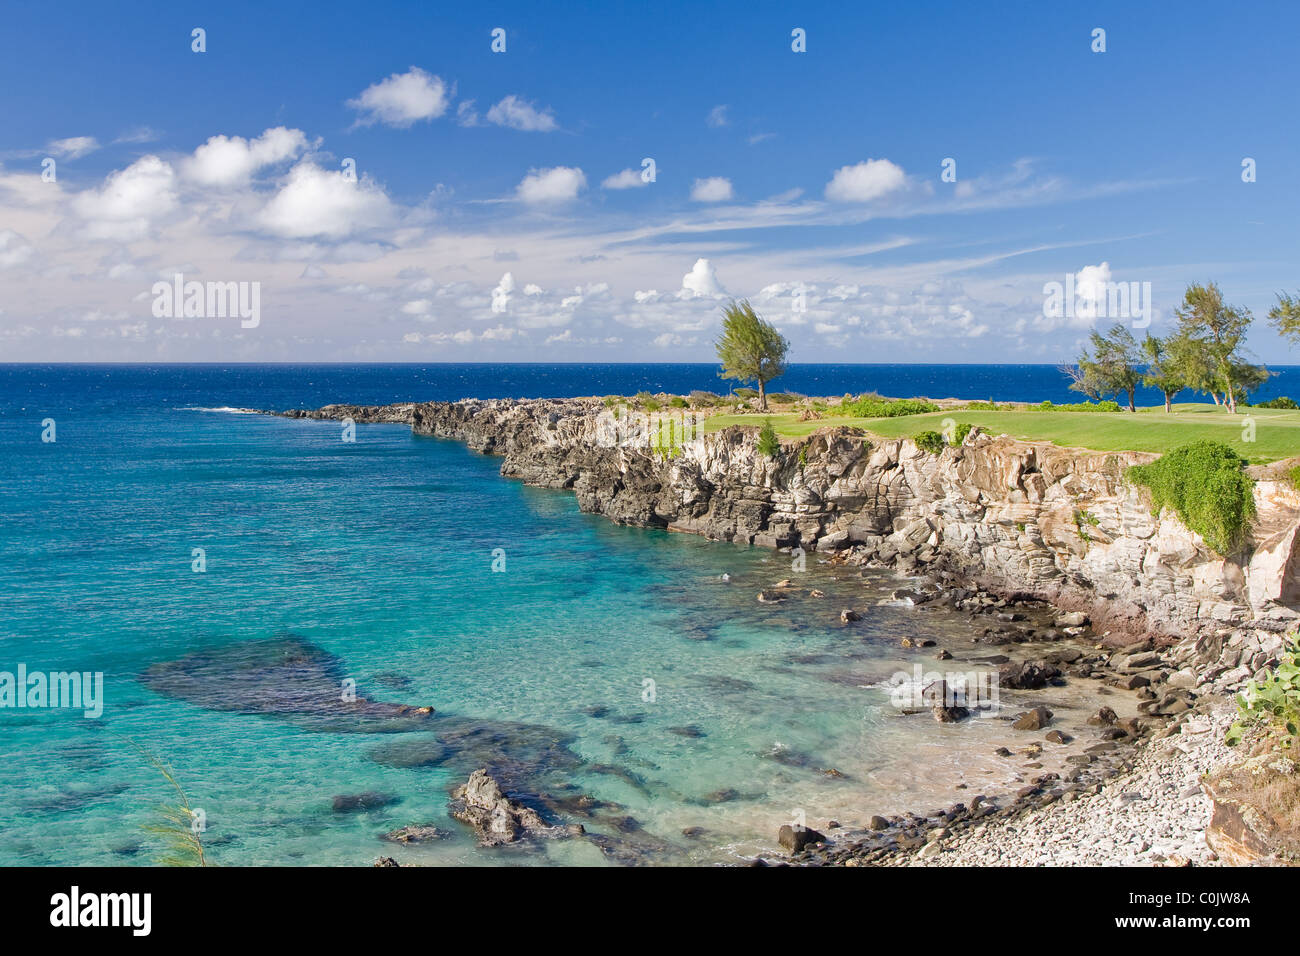 Maui Travel Guide - Expert Picks for your Maui Vacation | Fodor'-s